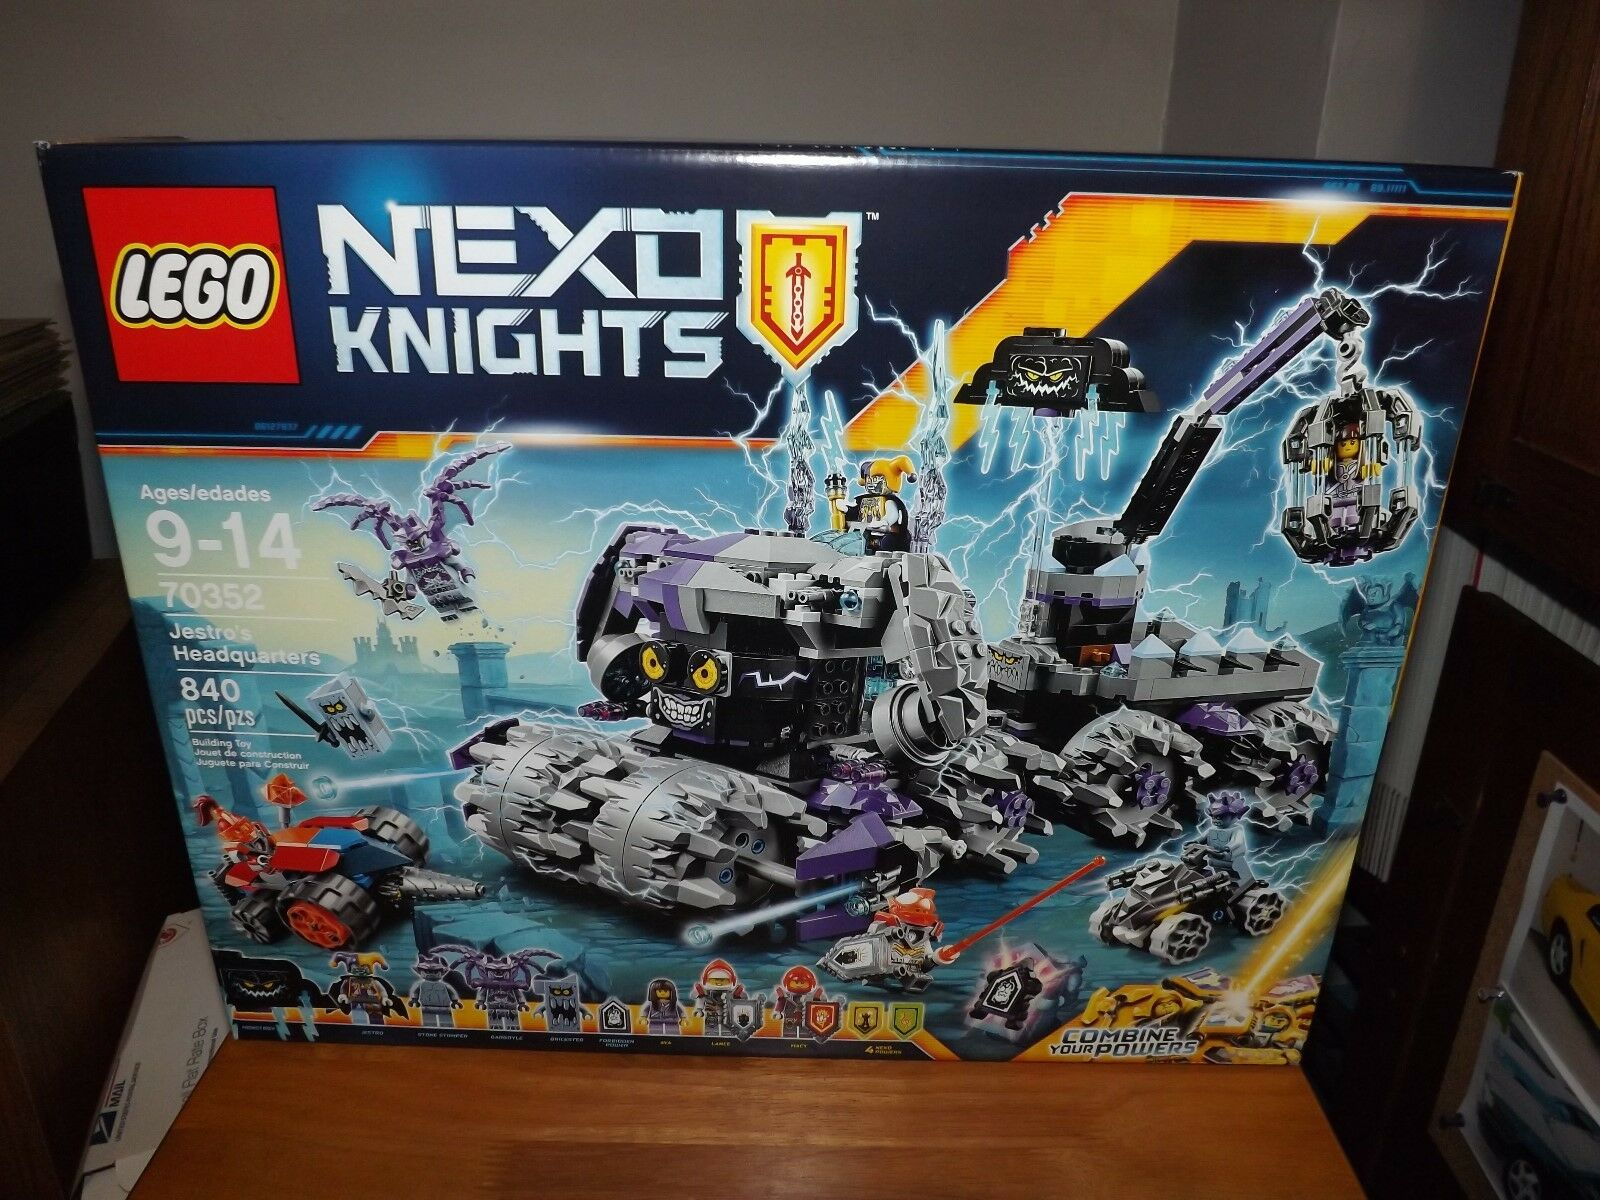 LEGO, NEXO KNIGHTS, JESTRO'S HEADQUARTERS, KIT  70352, 840 PIECES, NIB, 2017